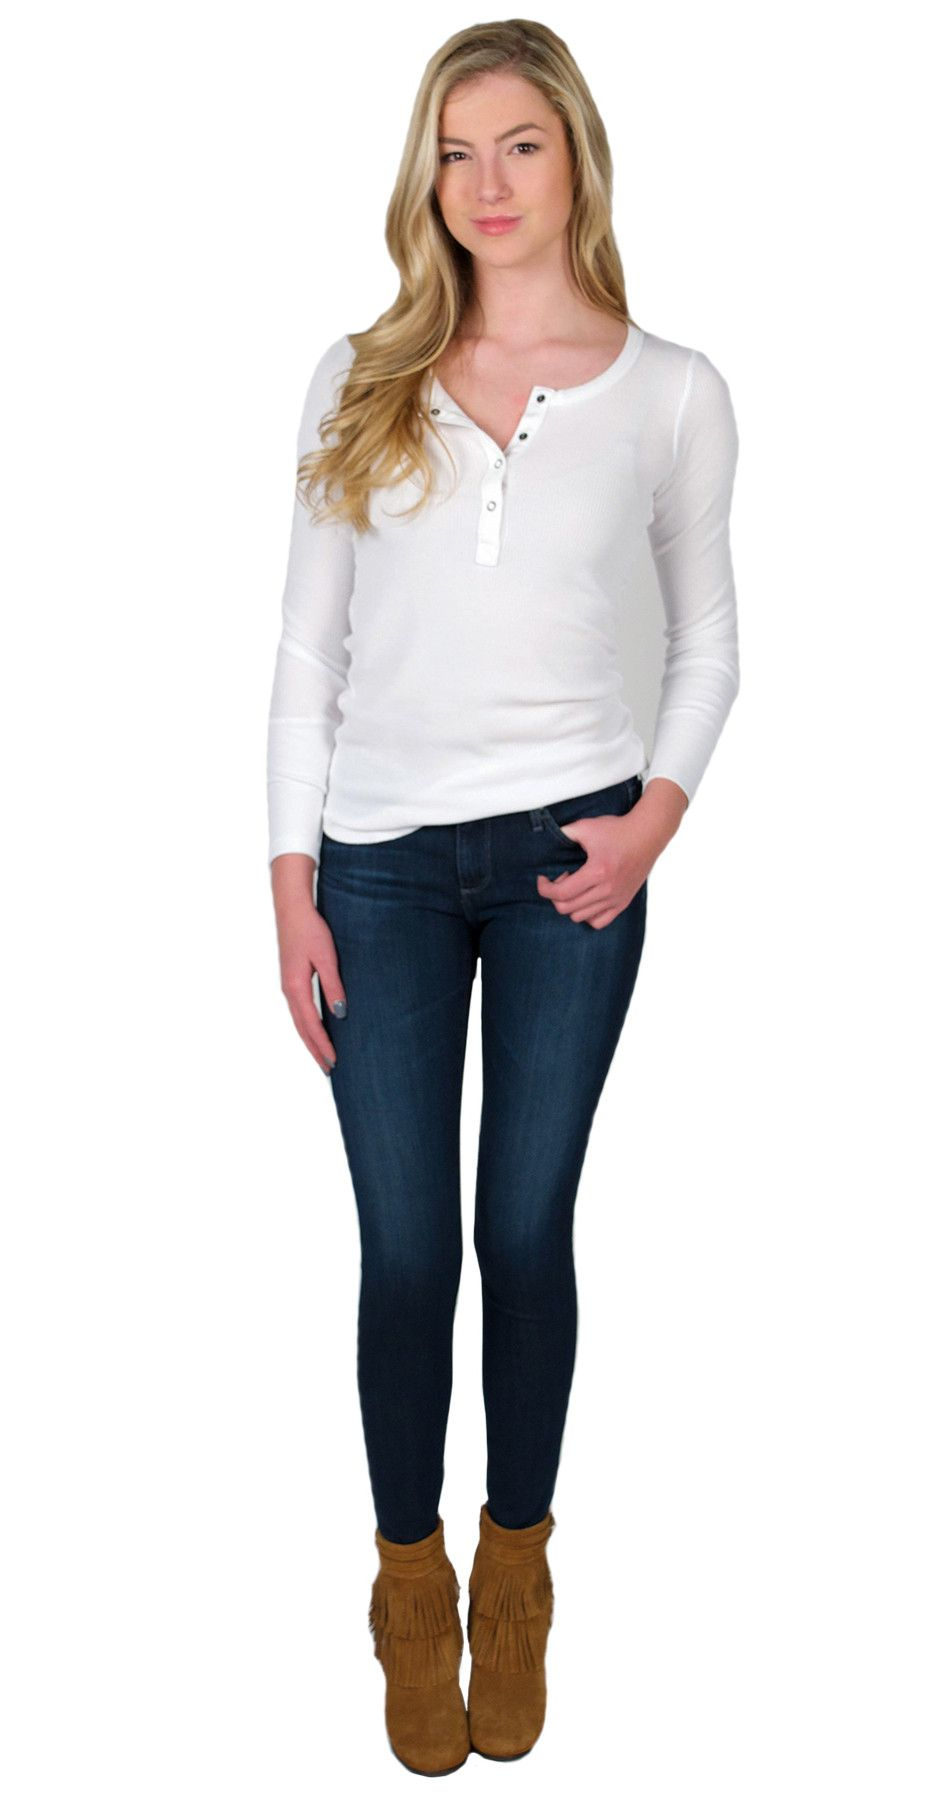 Find great deals on eBay for white long sleeve henley. Shop with confidence.